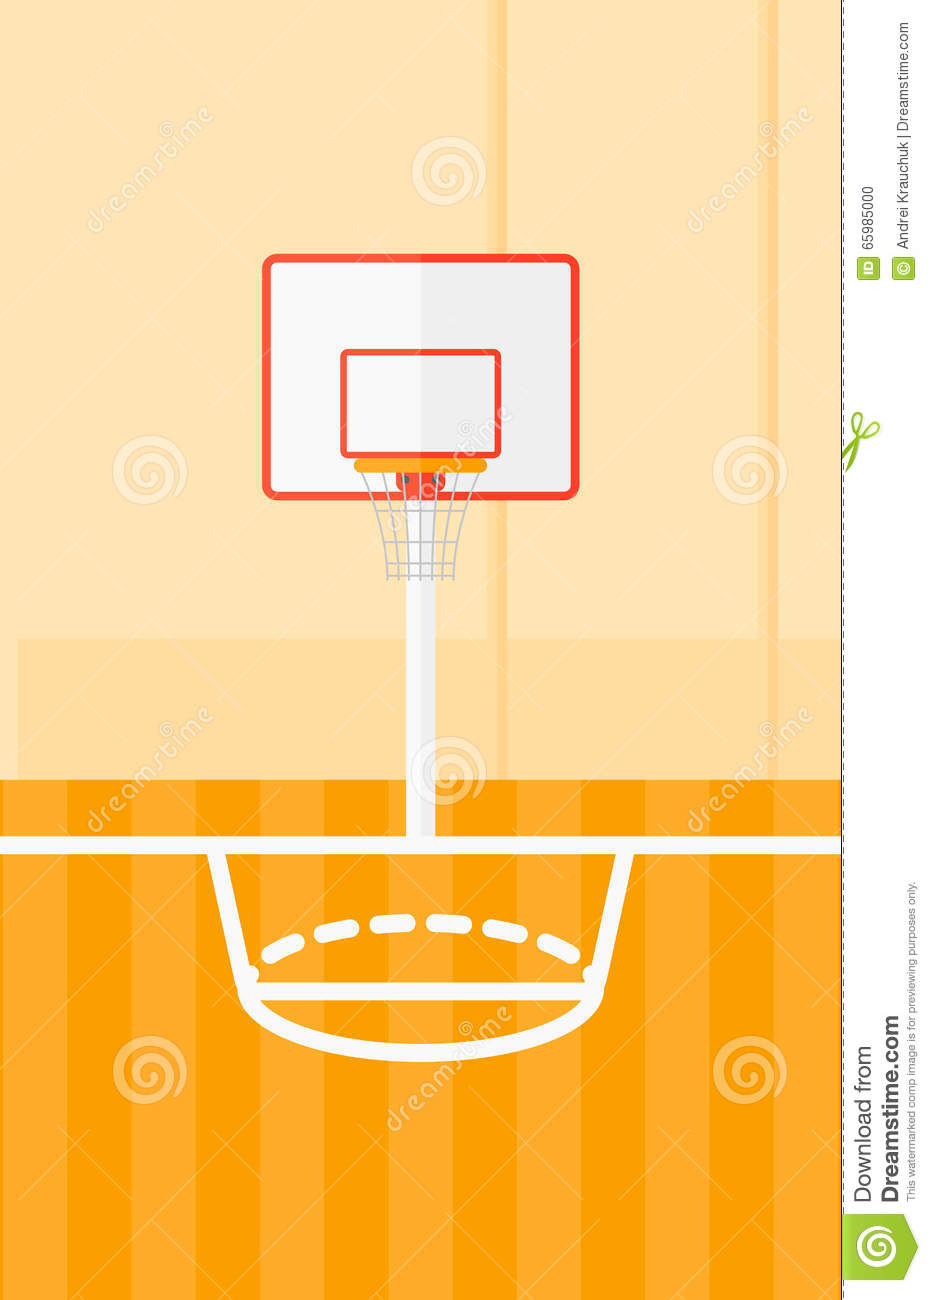 Background Of Basketball Court. Stock Vector - Image: 65985000